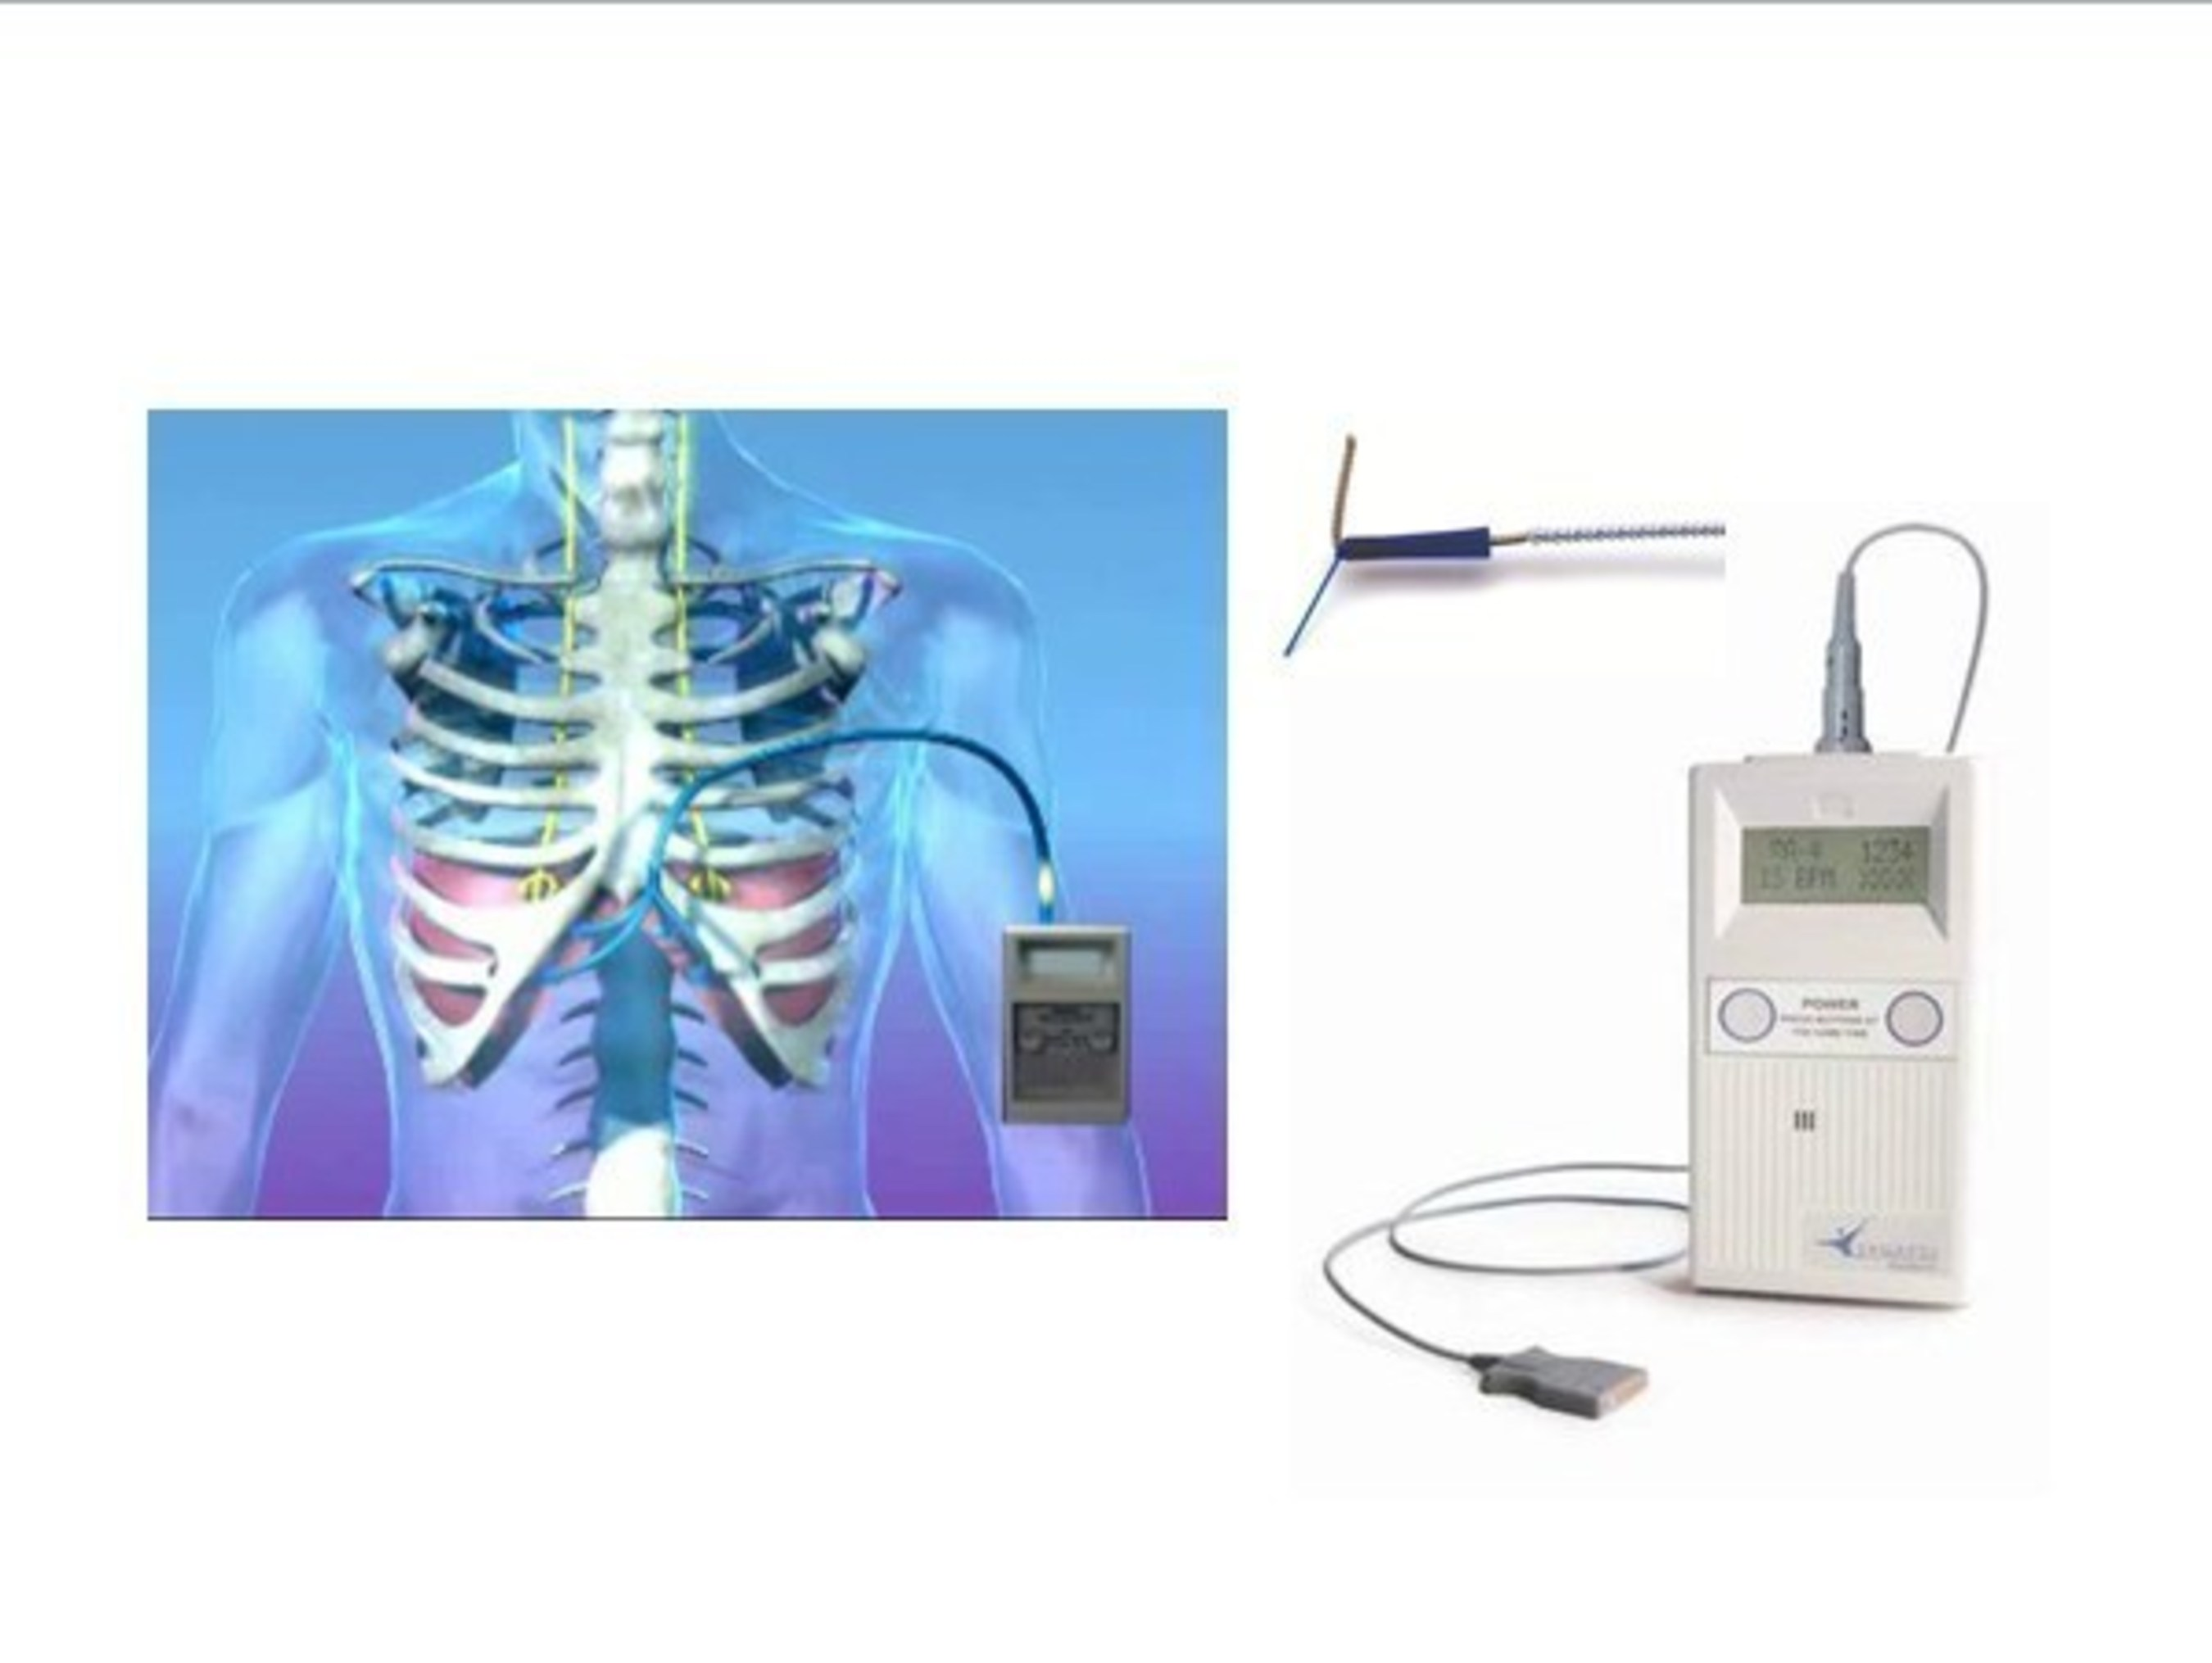 NeuRx Diaphragm Pacing System (DPS) approved by FDA, HDE,  for spinal cord and ALS patients